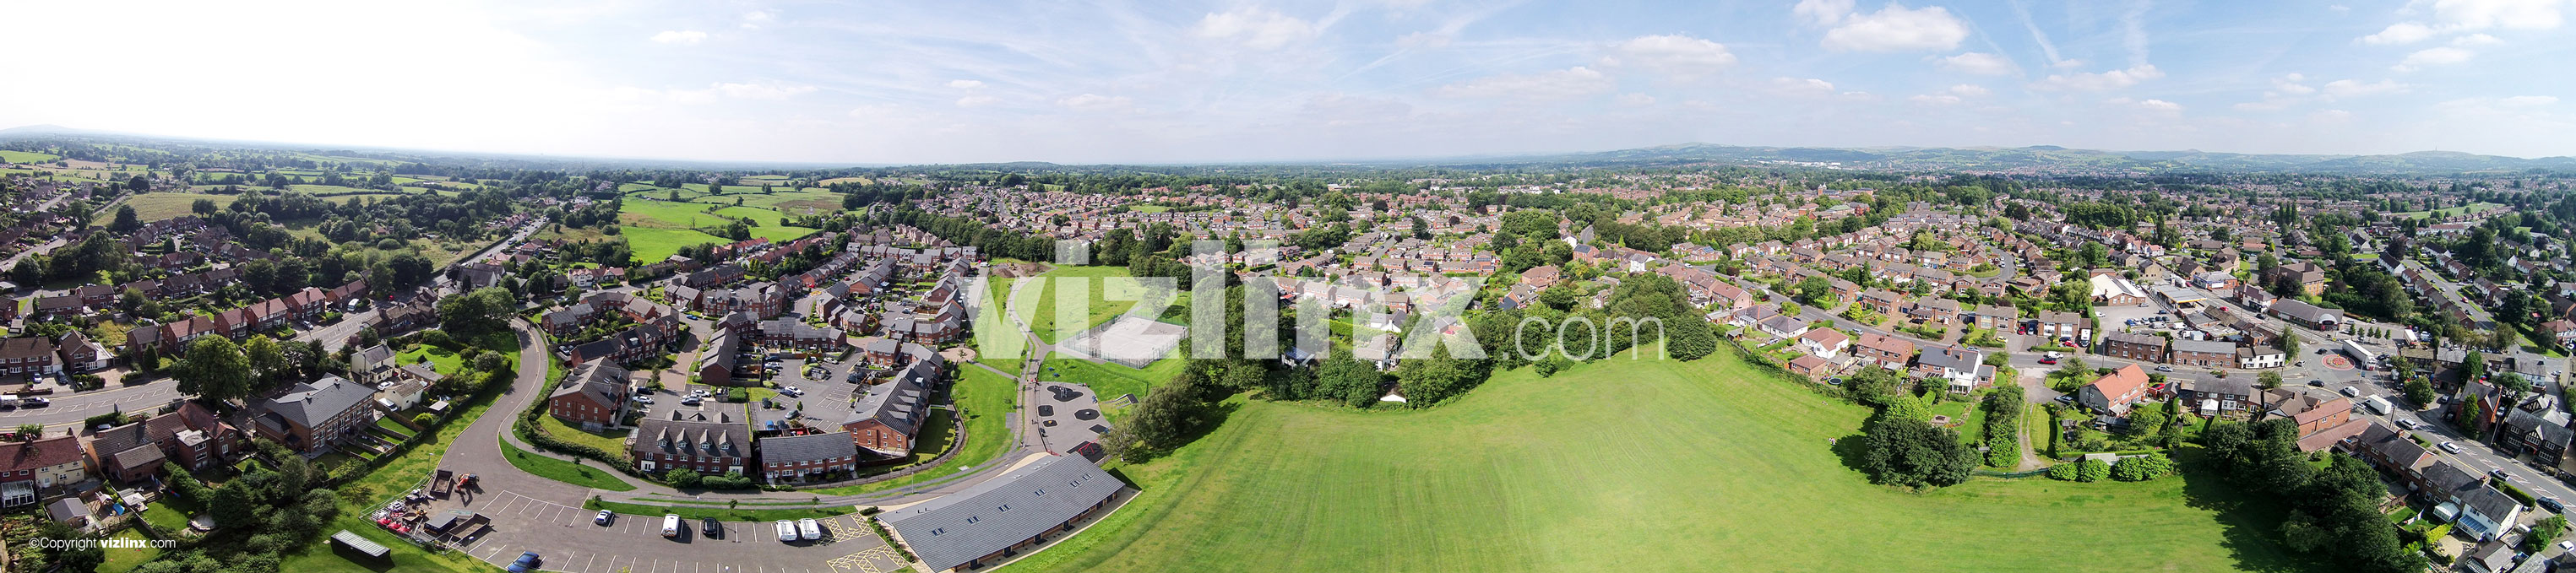 360 panorama of Broken Cross, Macclesfield